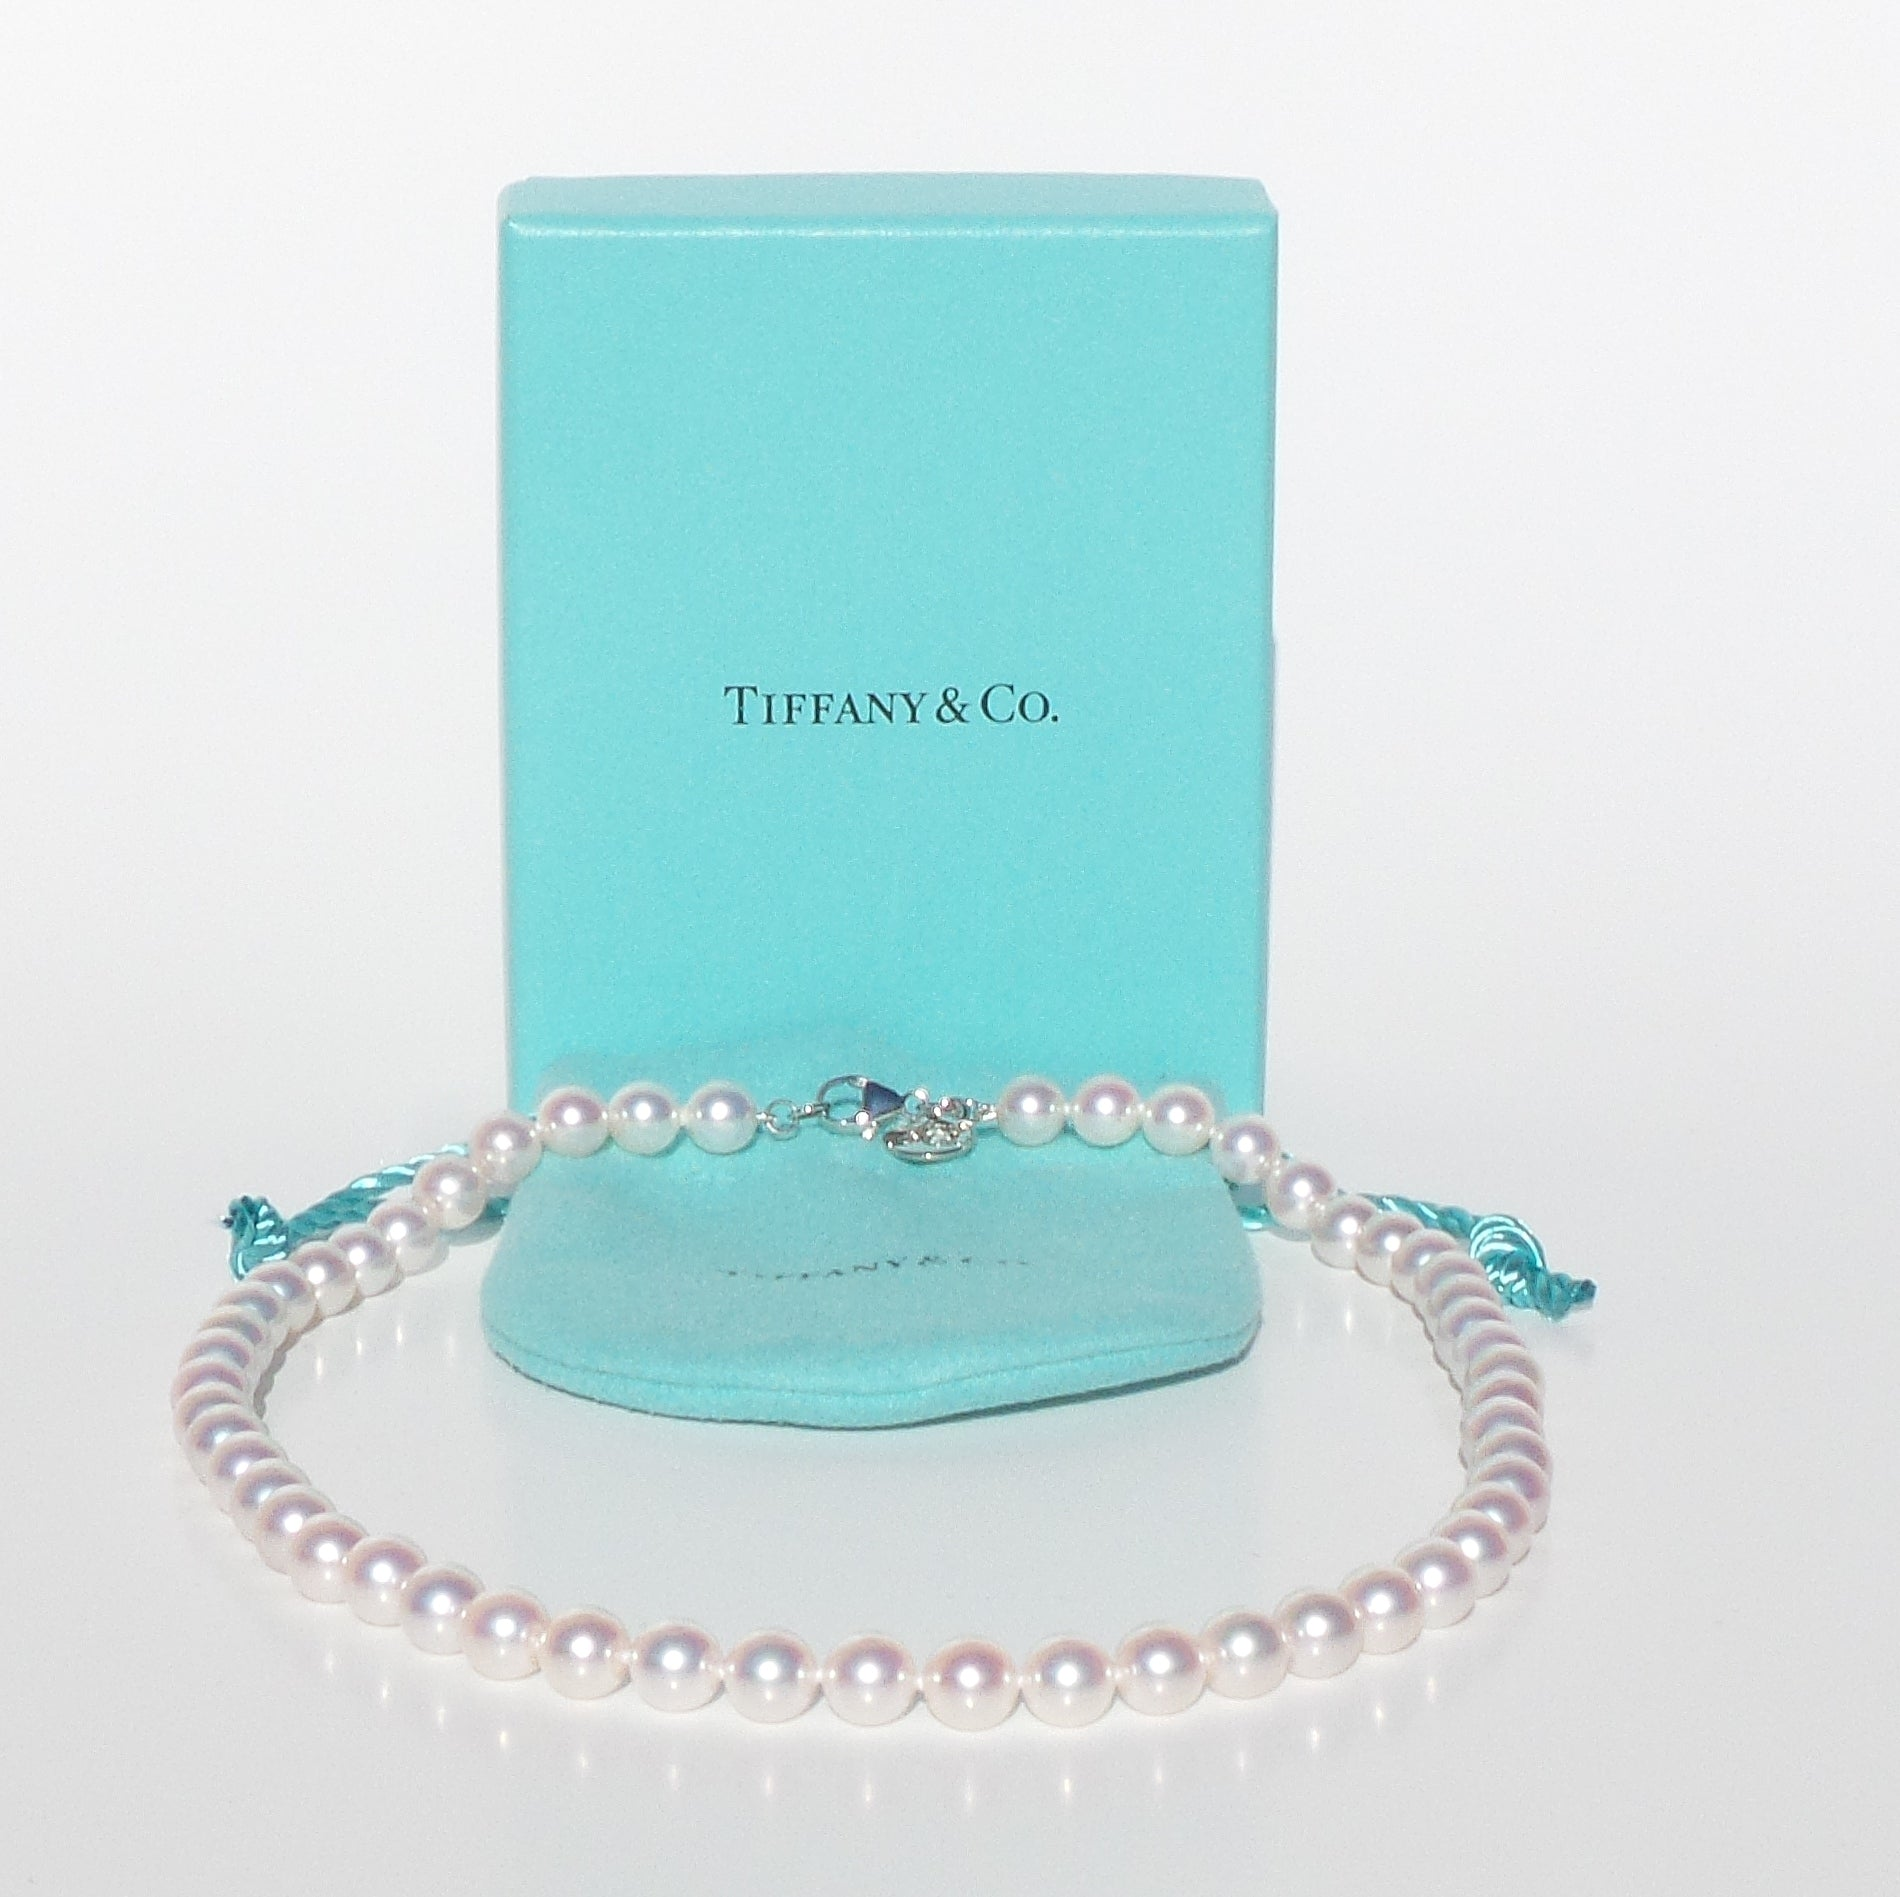 "TIFFANY & CO Akoya Cultured White Gold Clasp 16"" Essential Pearls Necklace $1750"